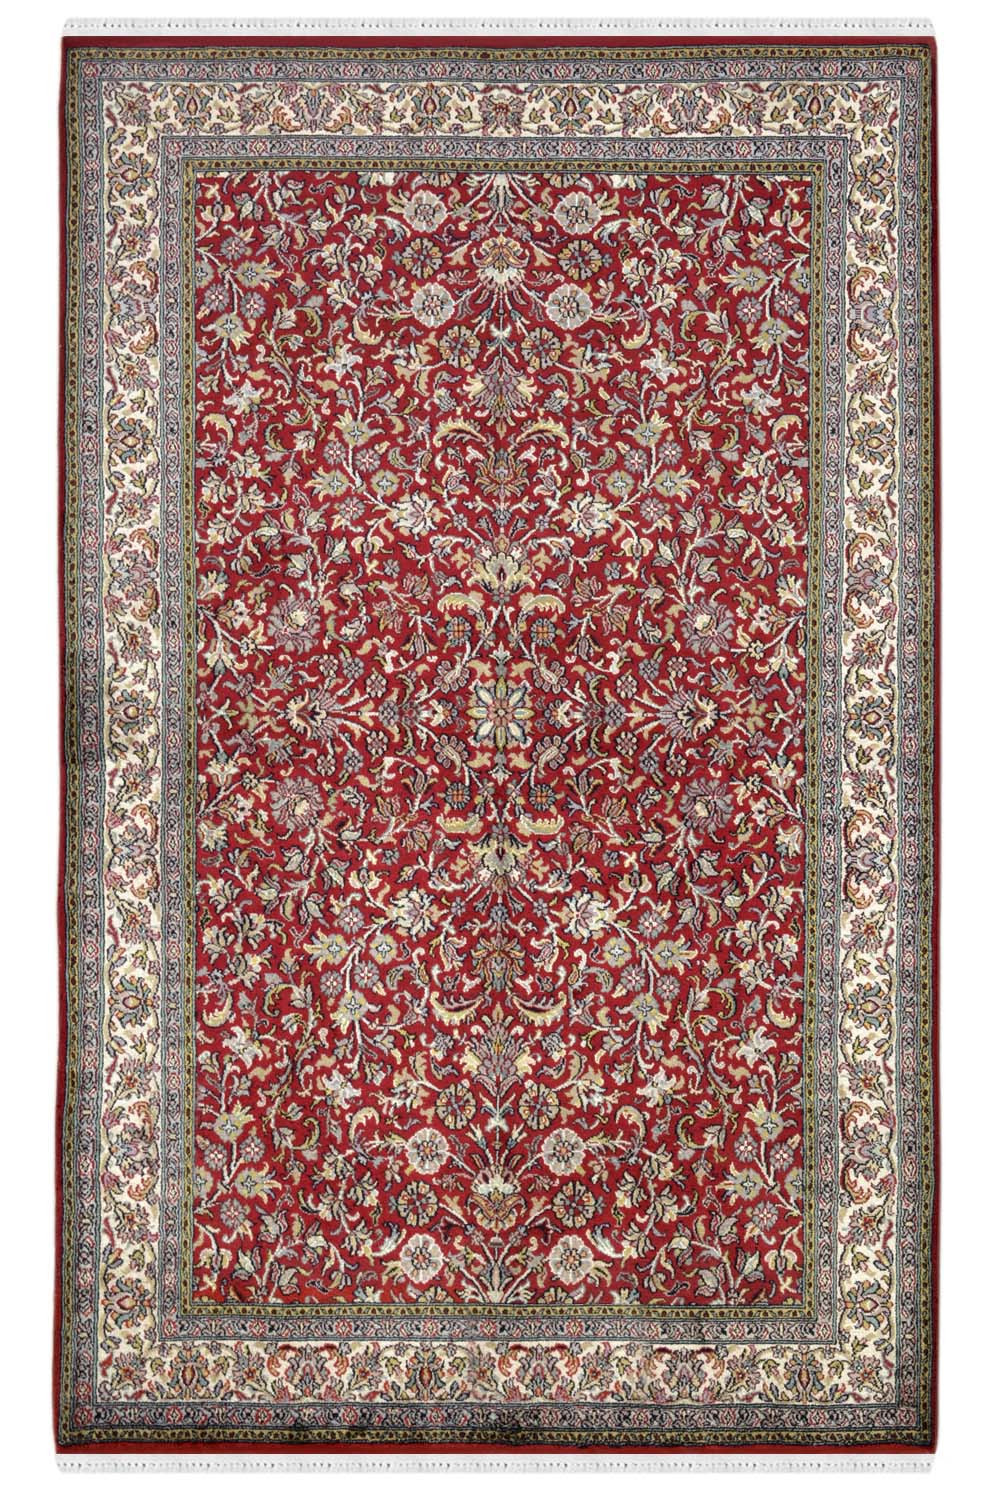 Shop All Over Bagh Floral Buy Handmade Kashmir Silk Rugs